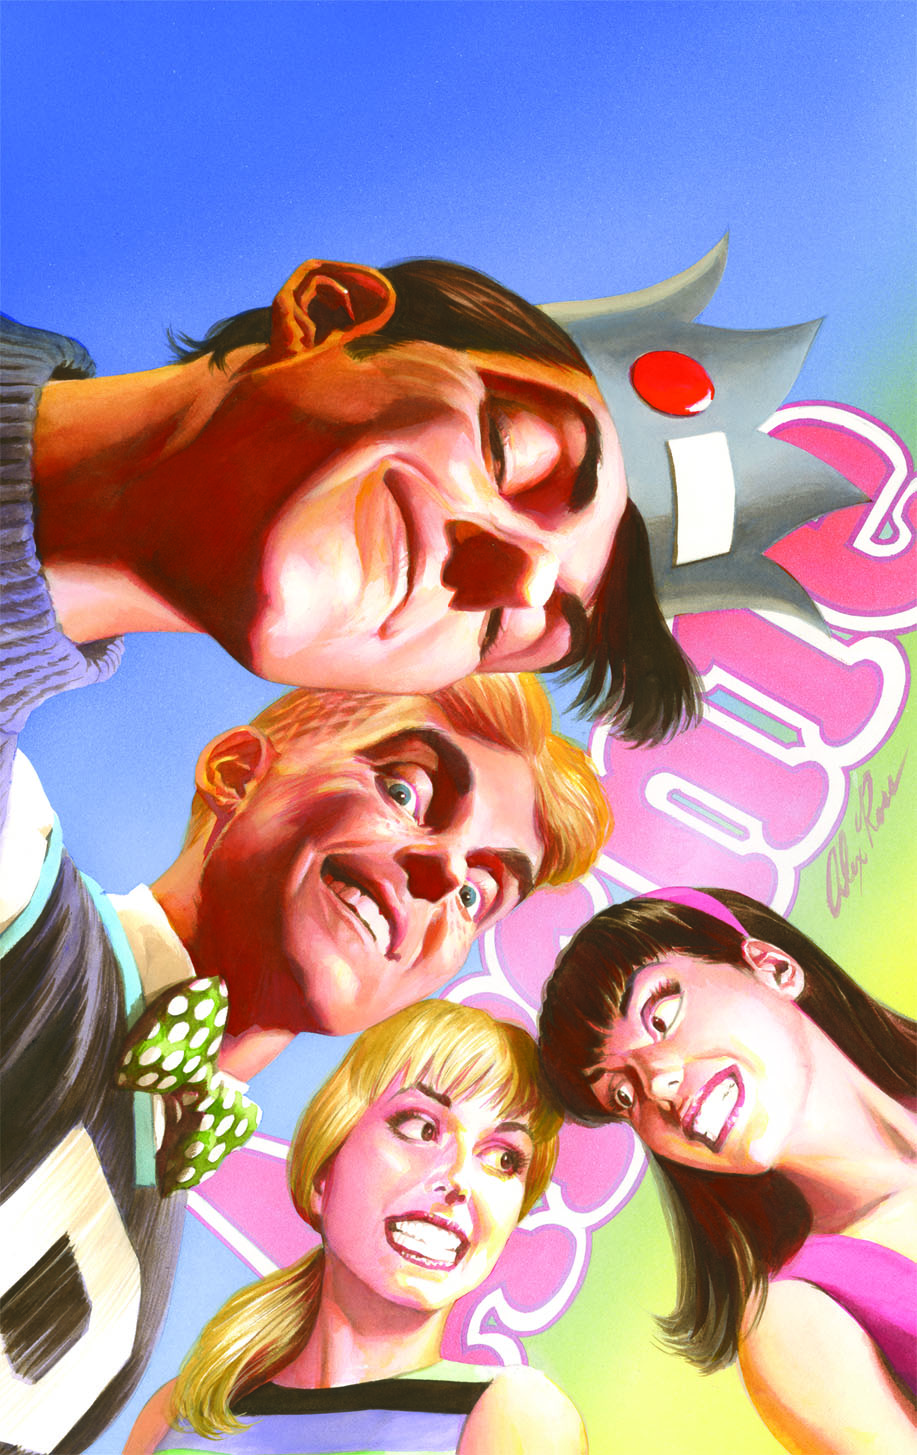 Television Series Of Archie Comics Come To Television With Riverdale Tv Series